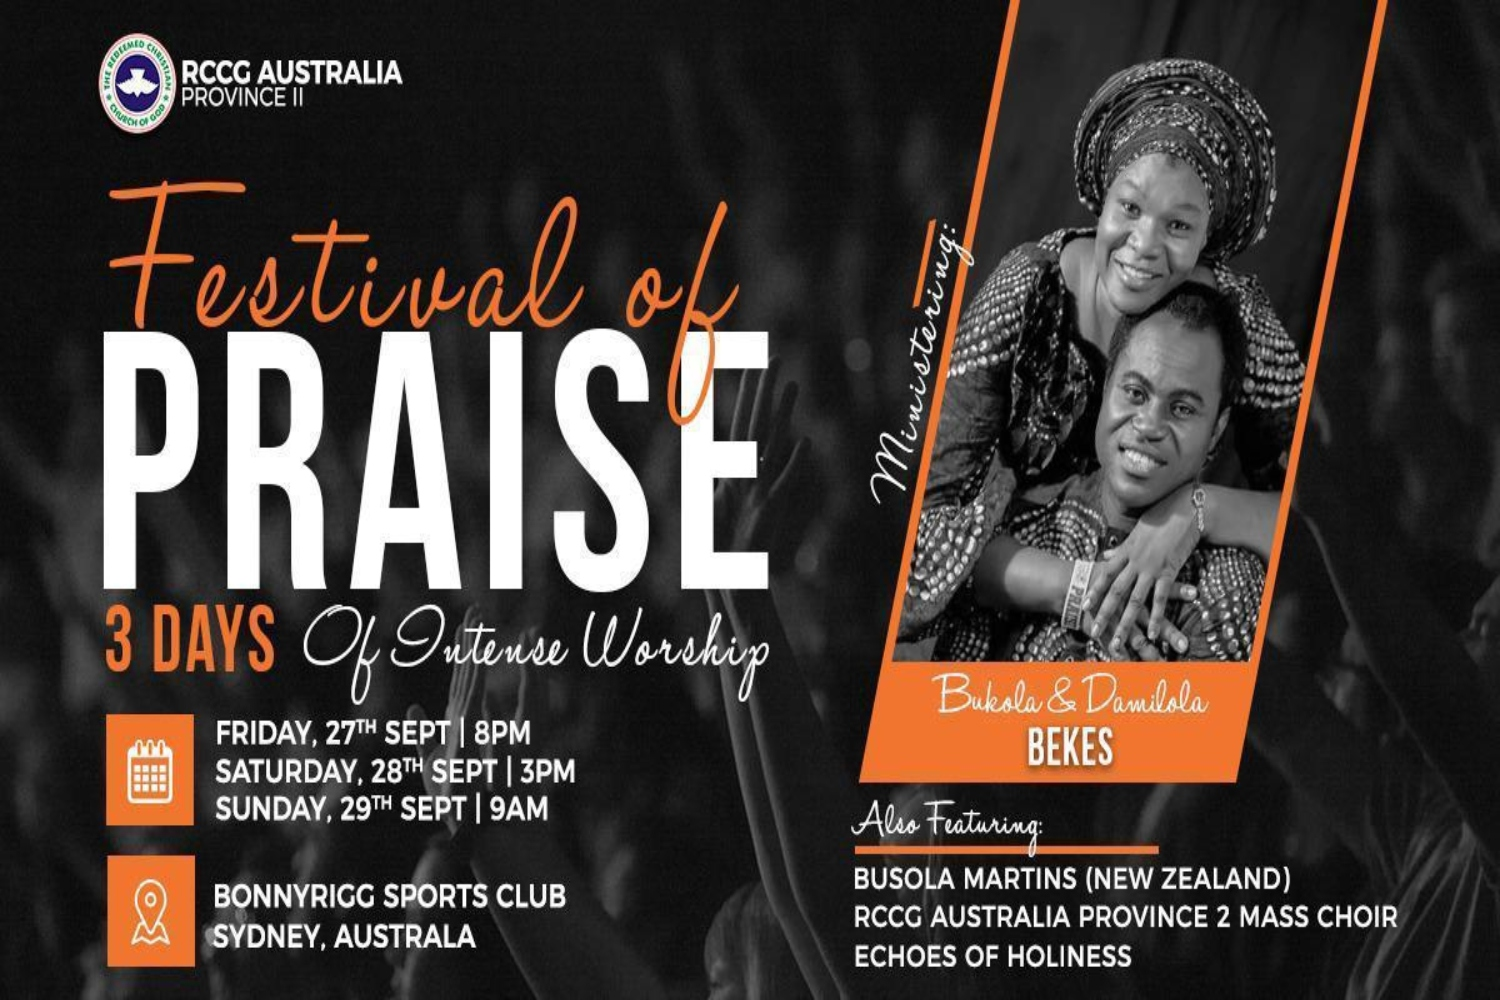 RCCG Australia Province 2 Conference 2019